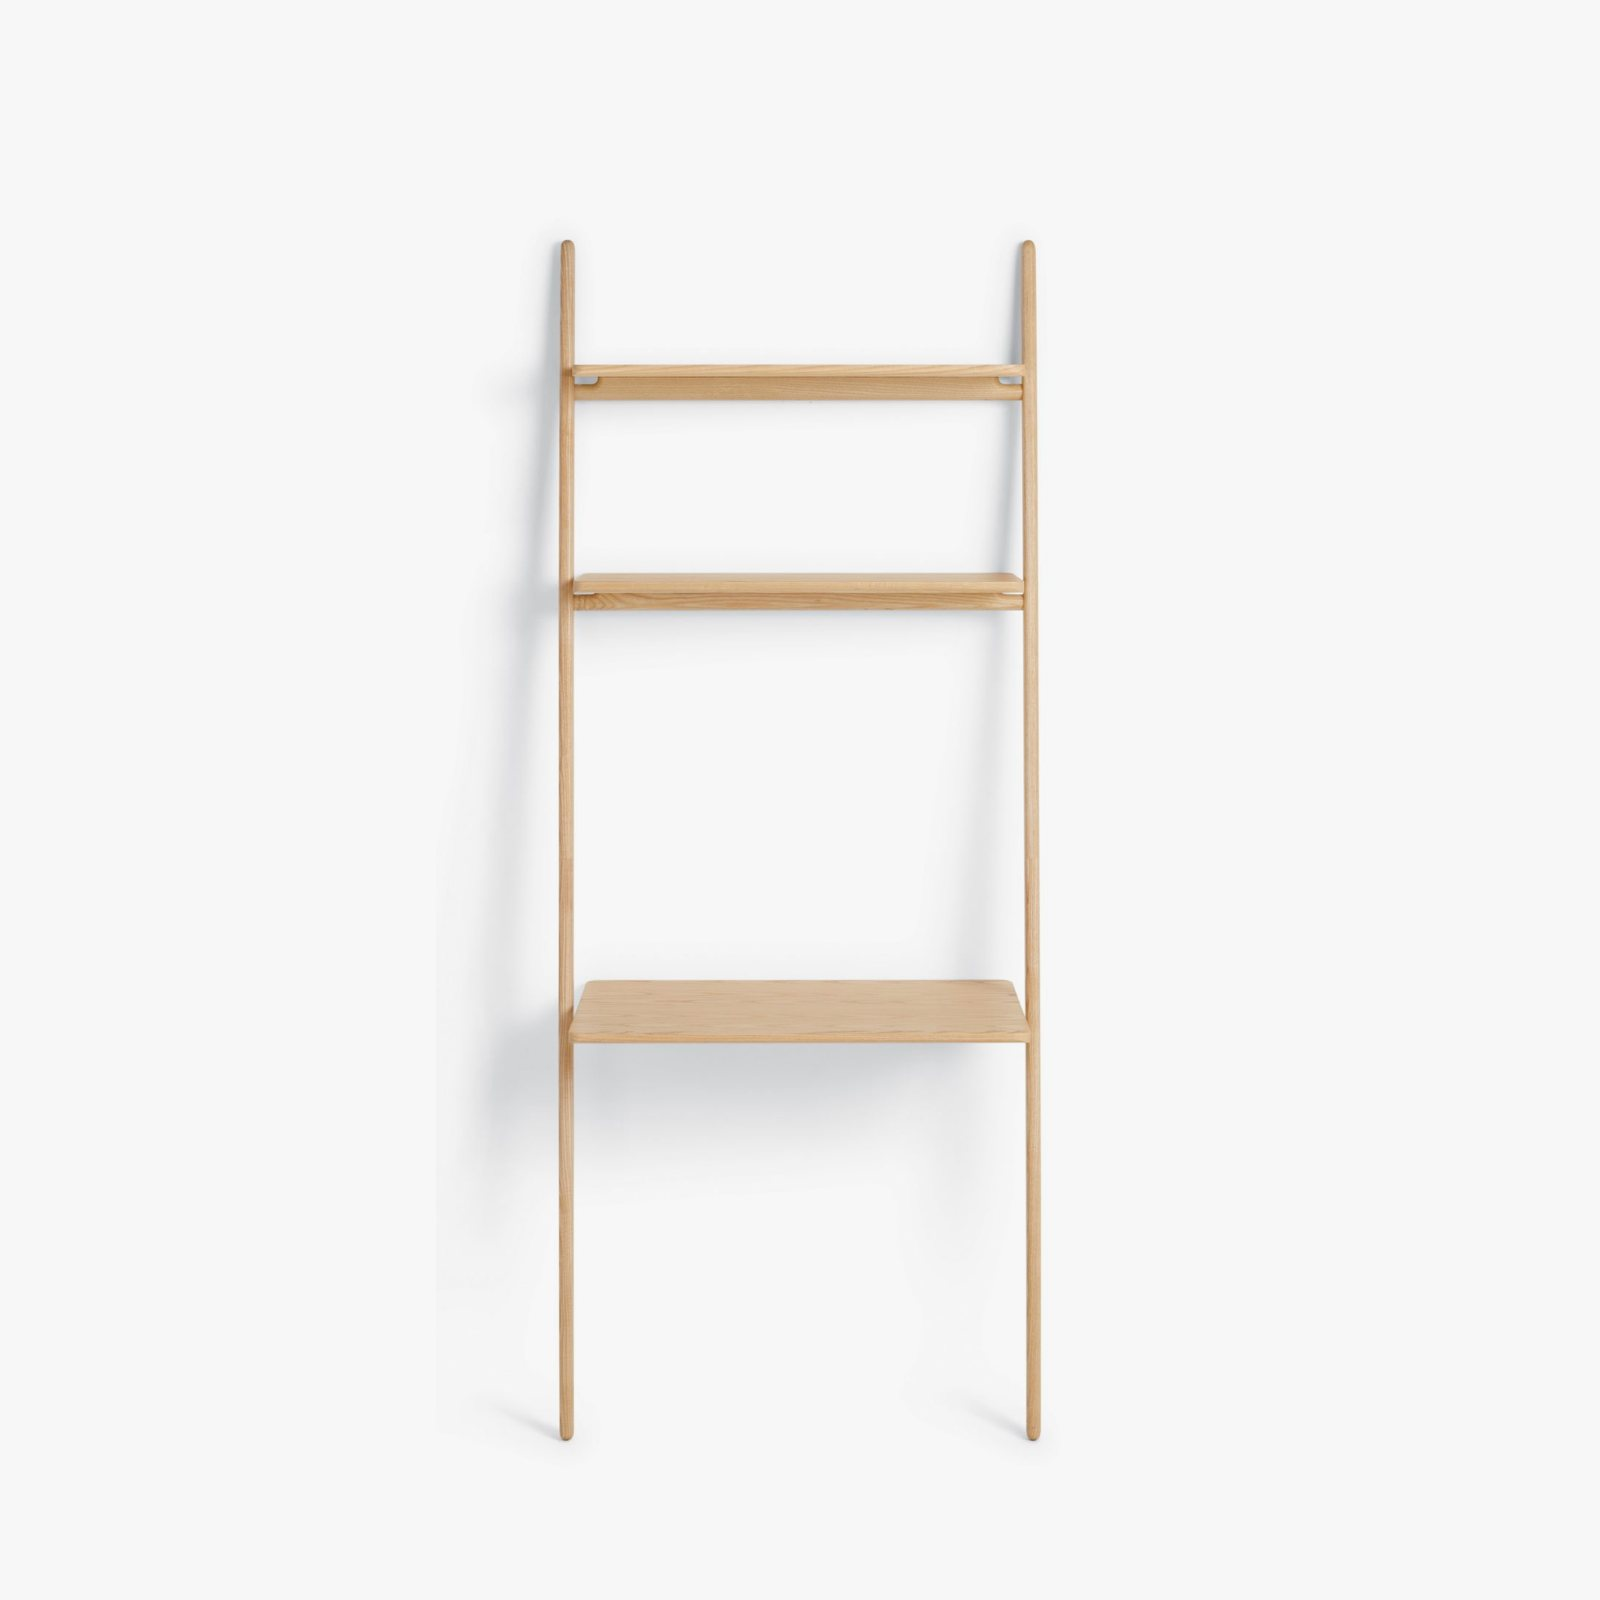 Folk Ladder Desk Shelving By Norm Architects For Design Within Reach